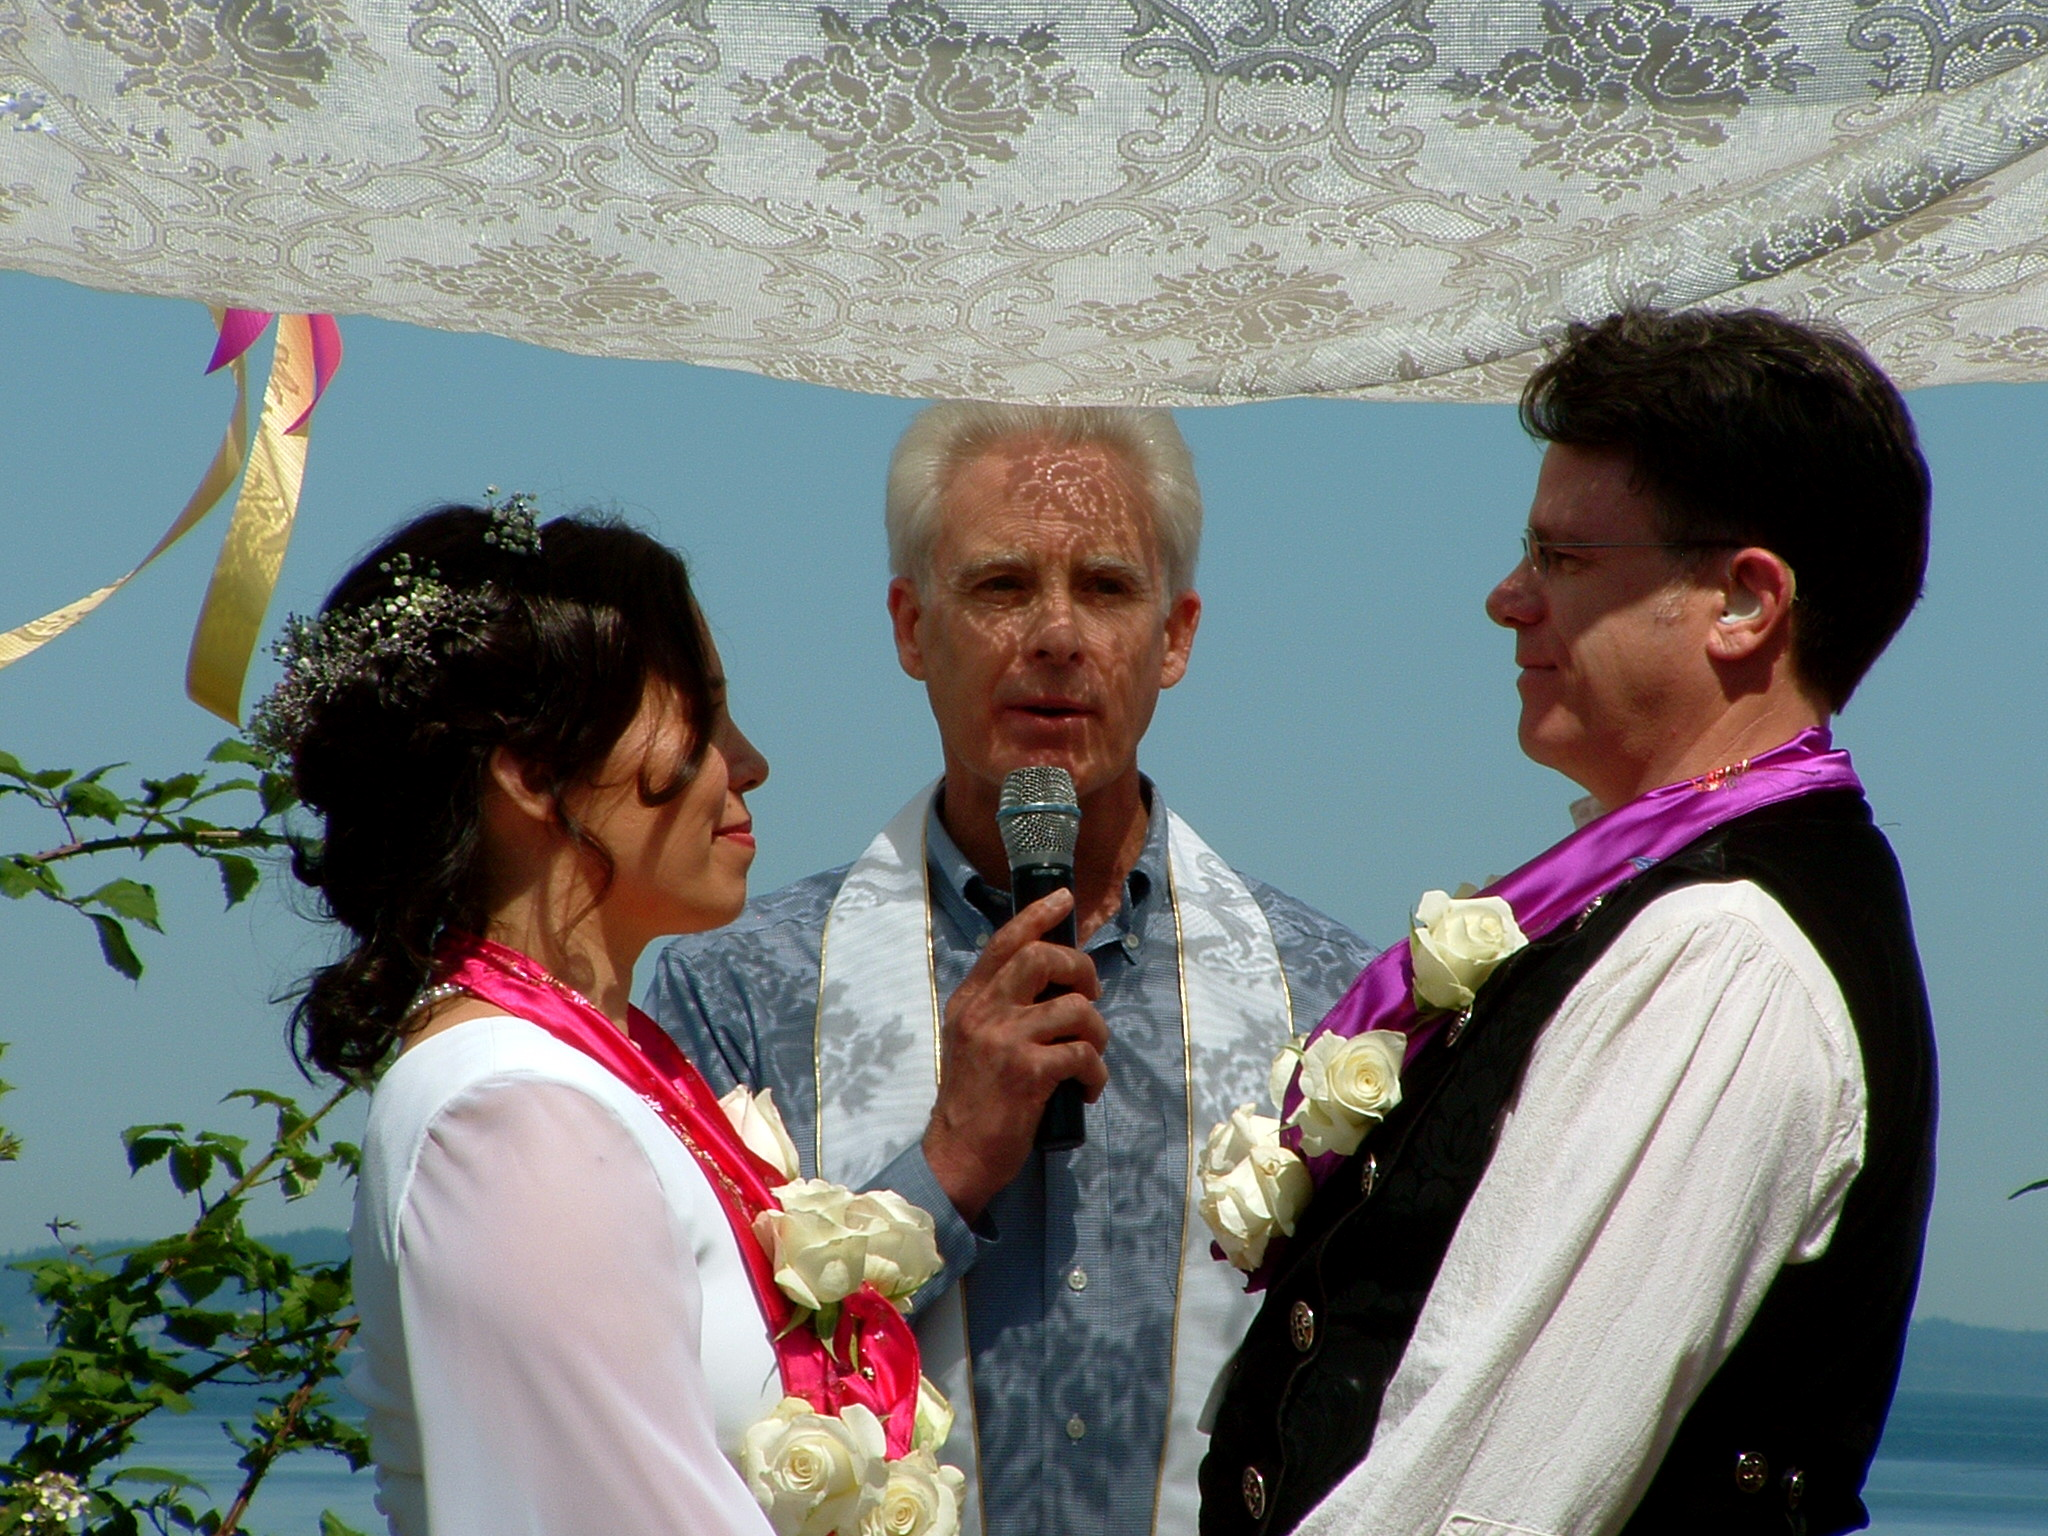 At long last the Wedding! The Marriage of Kristina & William Bass, Rev. John Halas officiating. May the Marriage last long! Northbeach Park, Blue Ridge, Seattle, Washington. Saturday 11 July 2009.